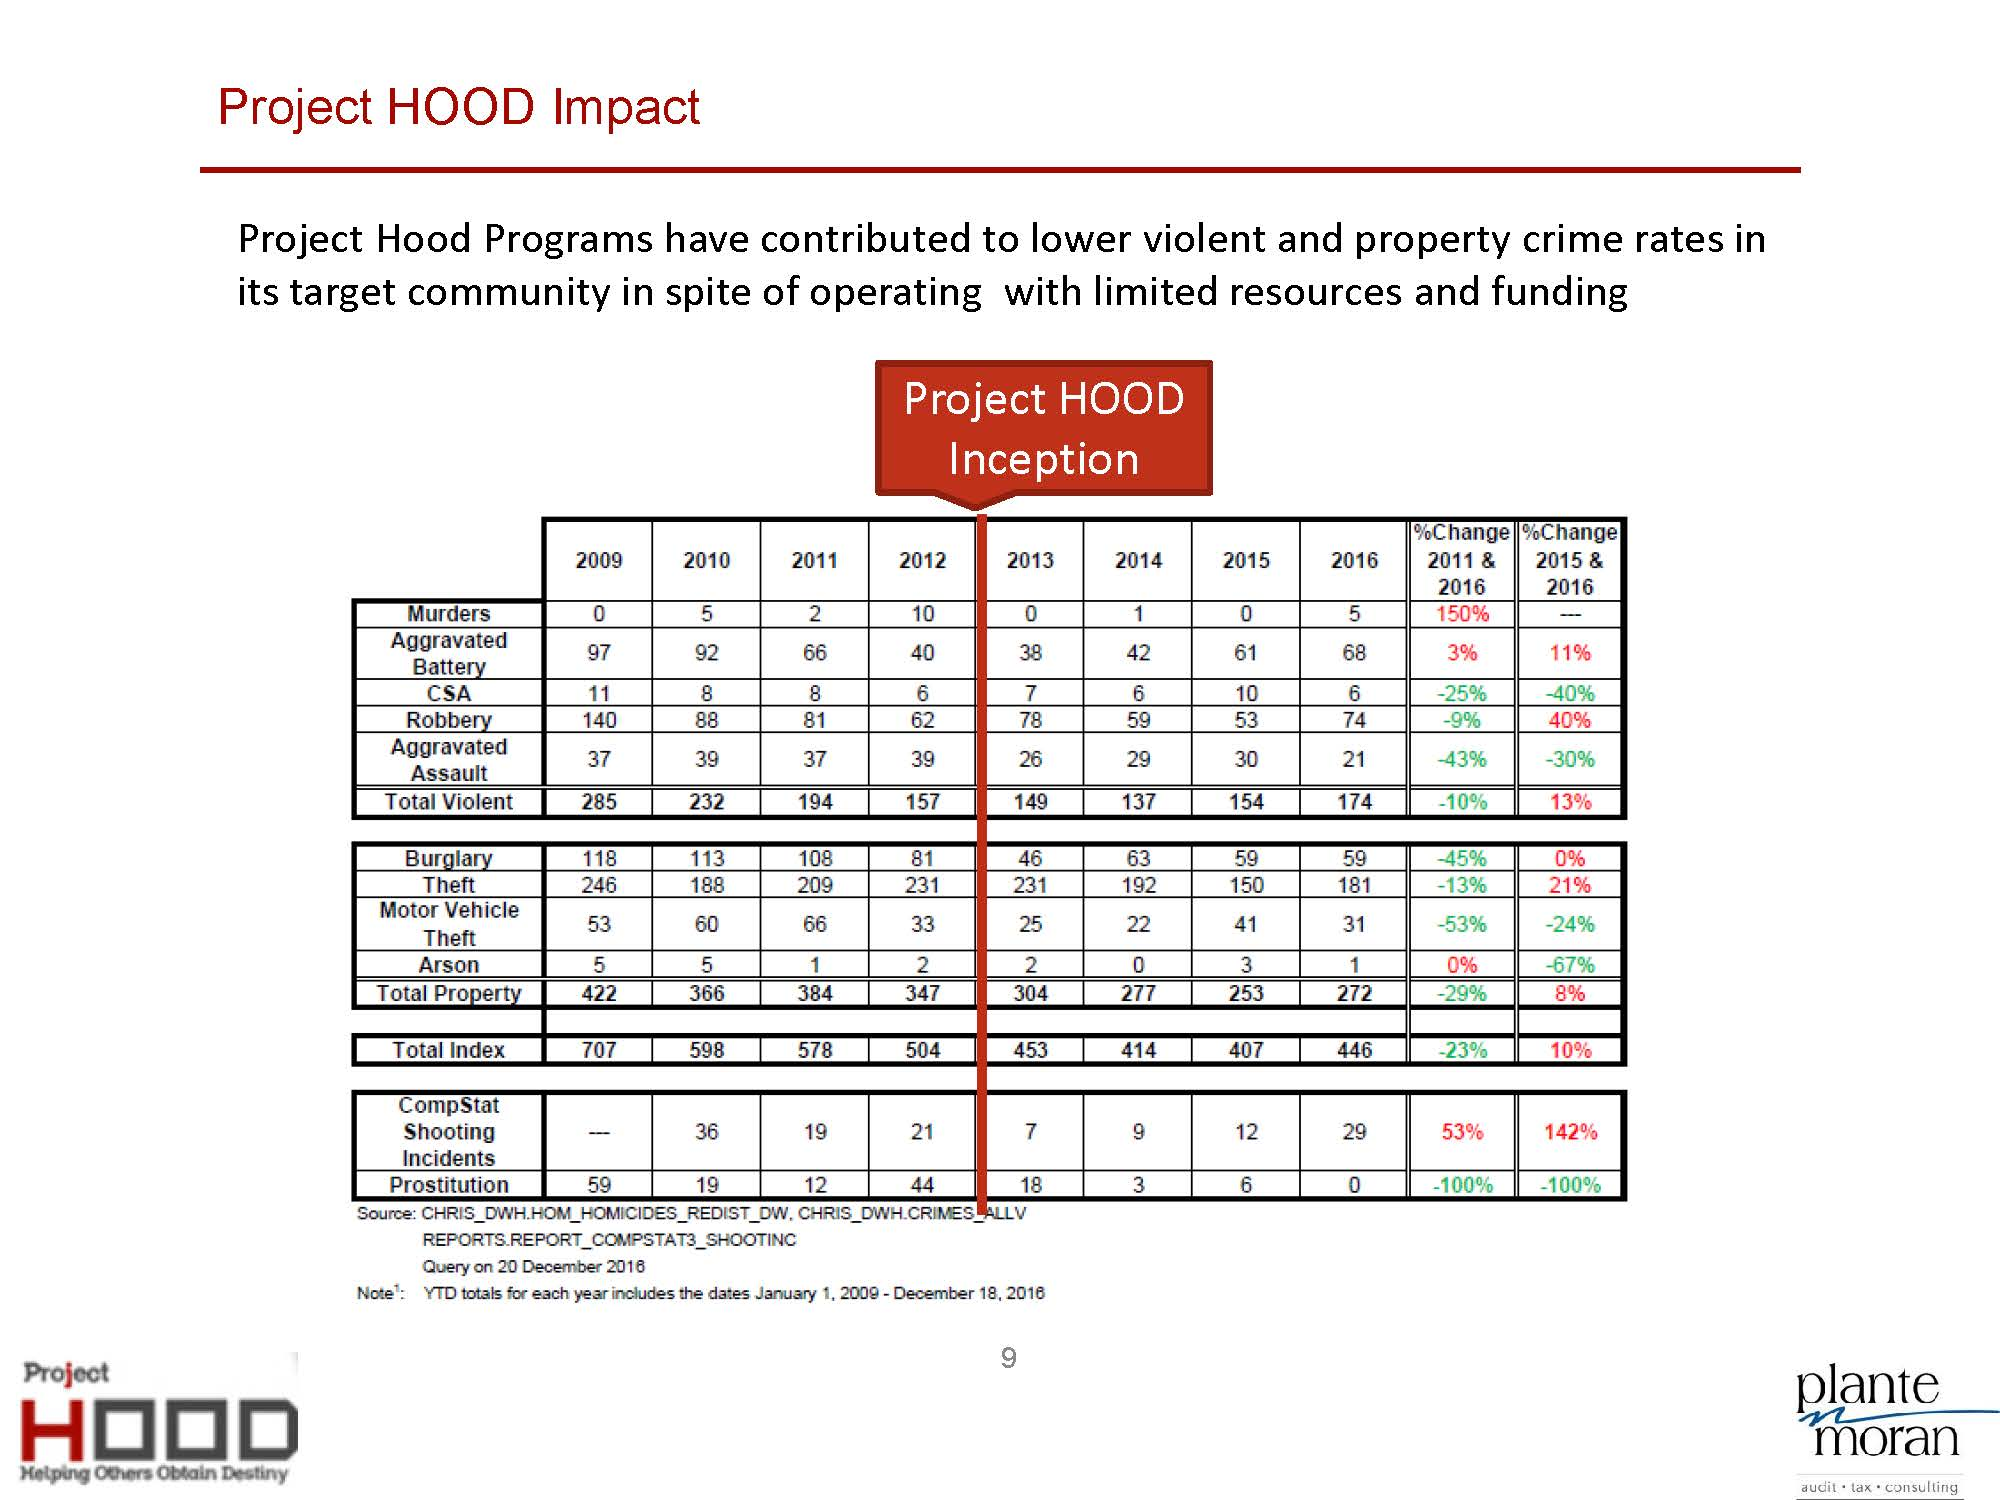 Project HOOD Community Center Business Plan_8-5_Page_09.jpg